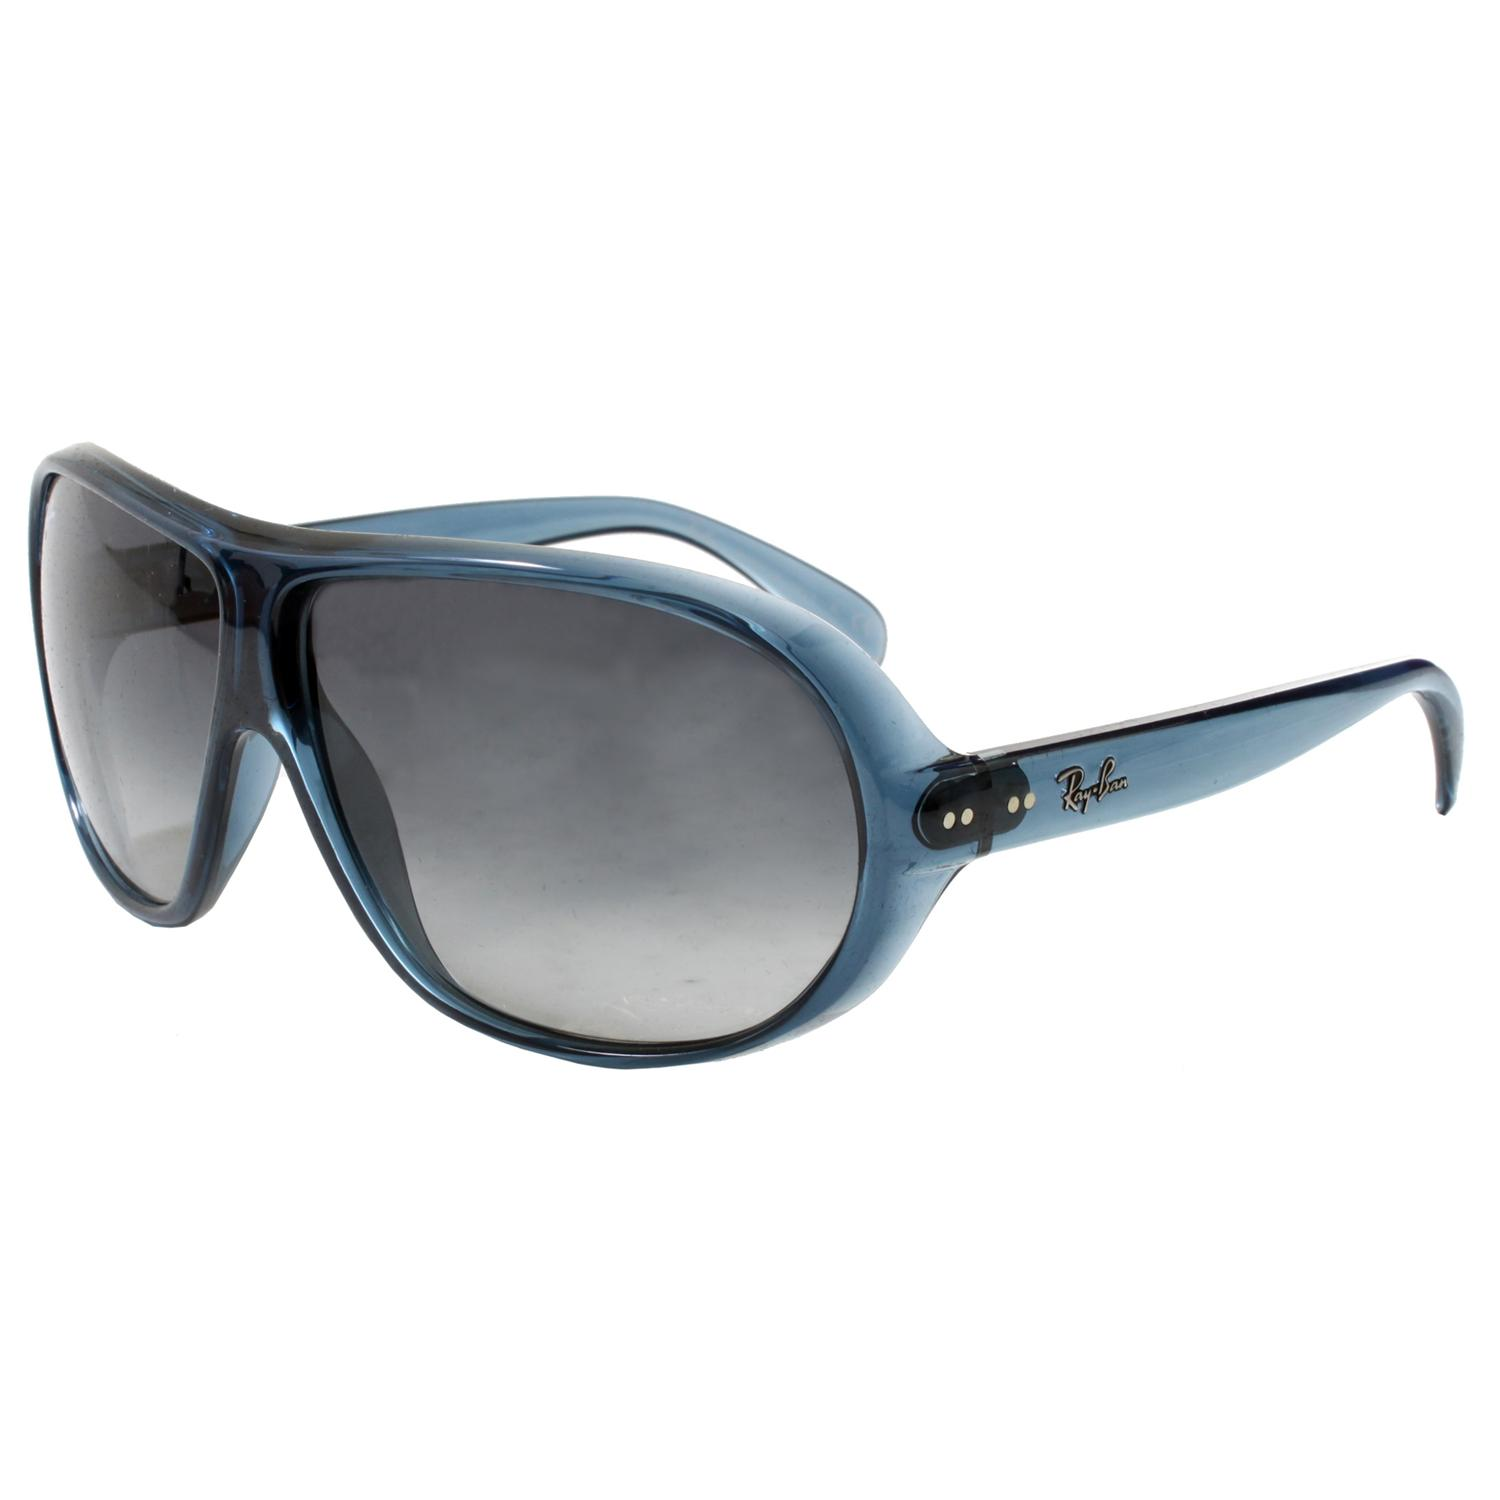 Vip.ray Ban Outlet Stores Reviews « Heritage Malta 6190fa116c8